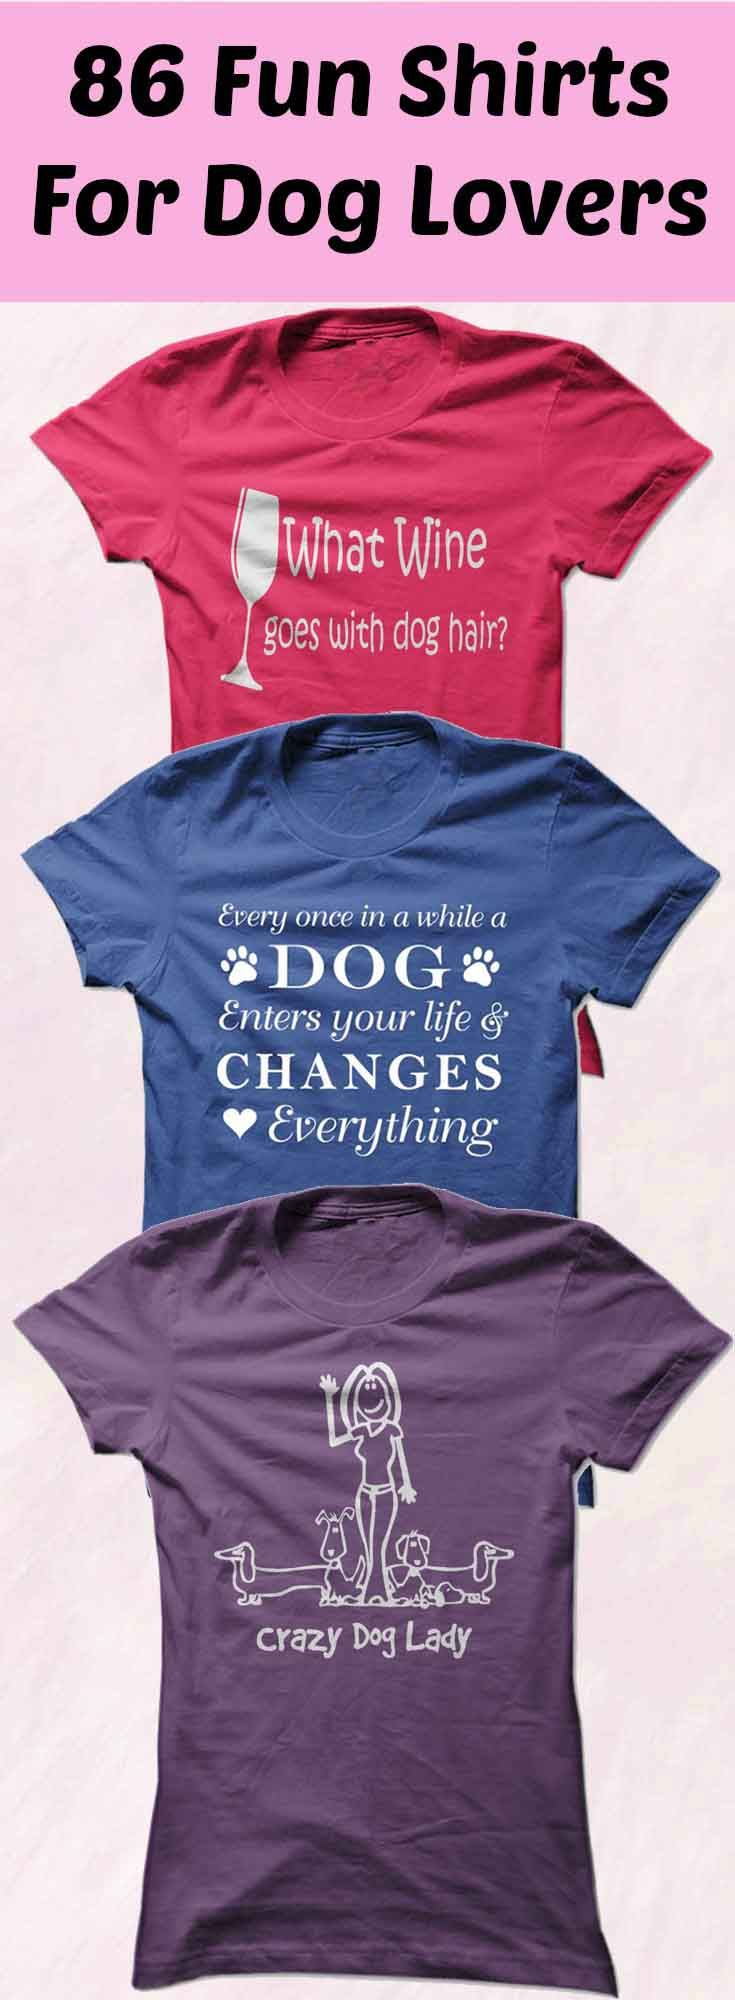 Good Gifts For Dog Lovers Part - 39: Are You A Dog Lover? Or Do You Know One? Then Youu0027ll